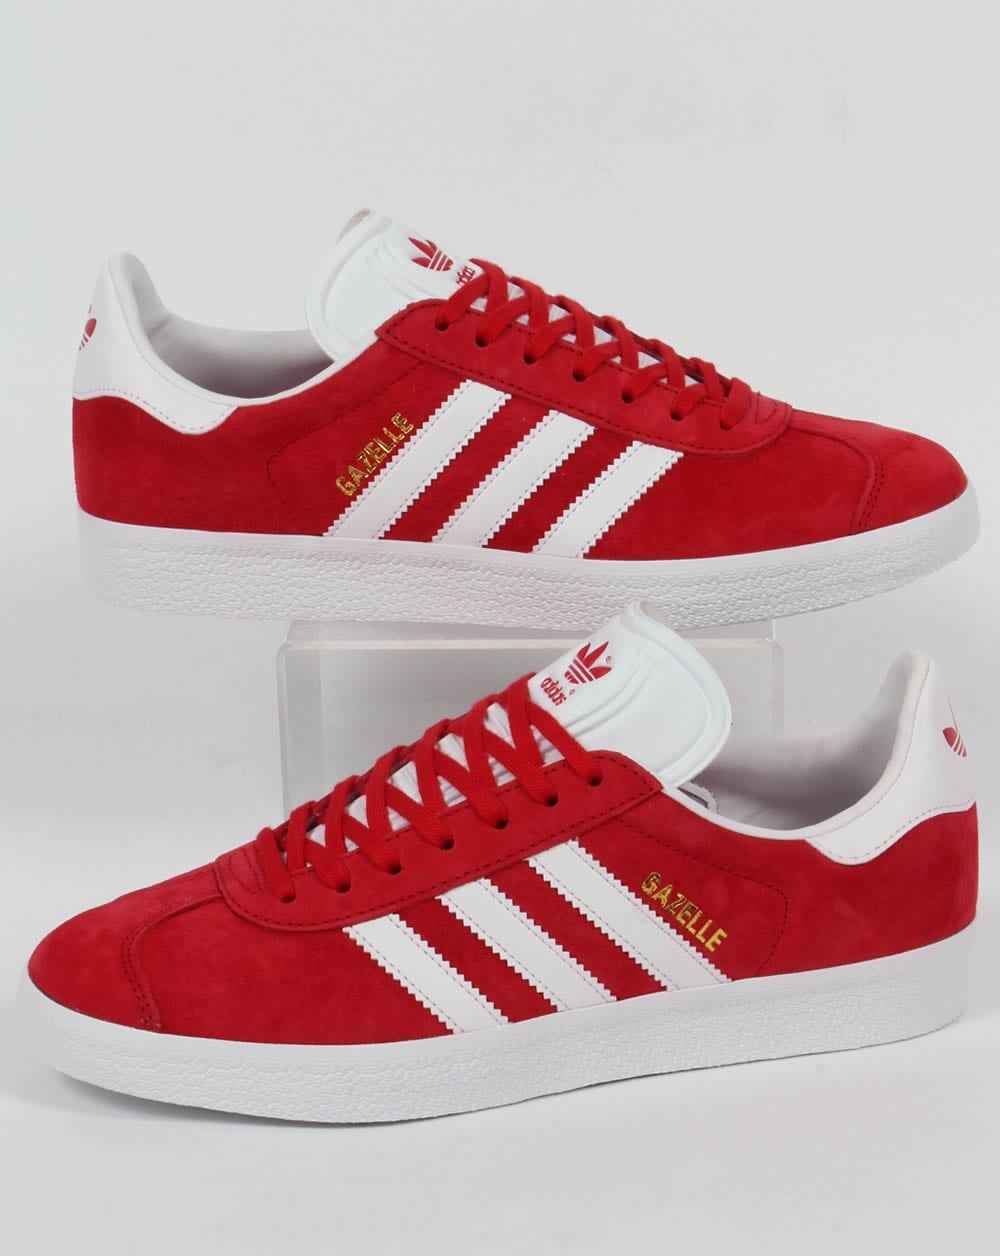 3ffd73936c0 adidas Trainers Adidas Gazelle Trainers Power Red White